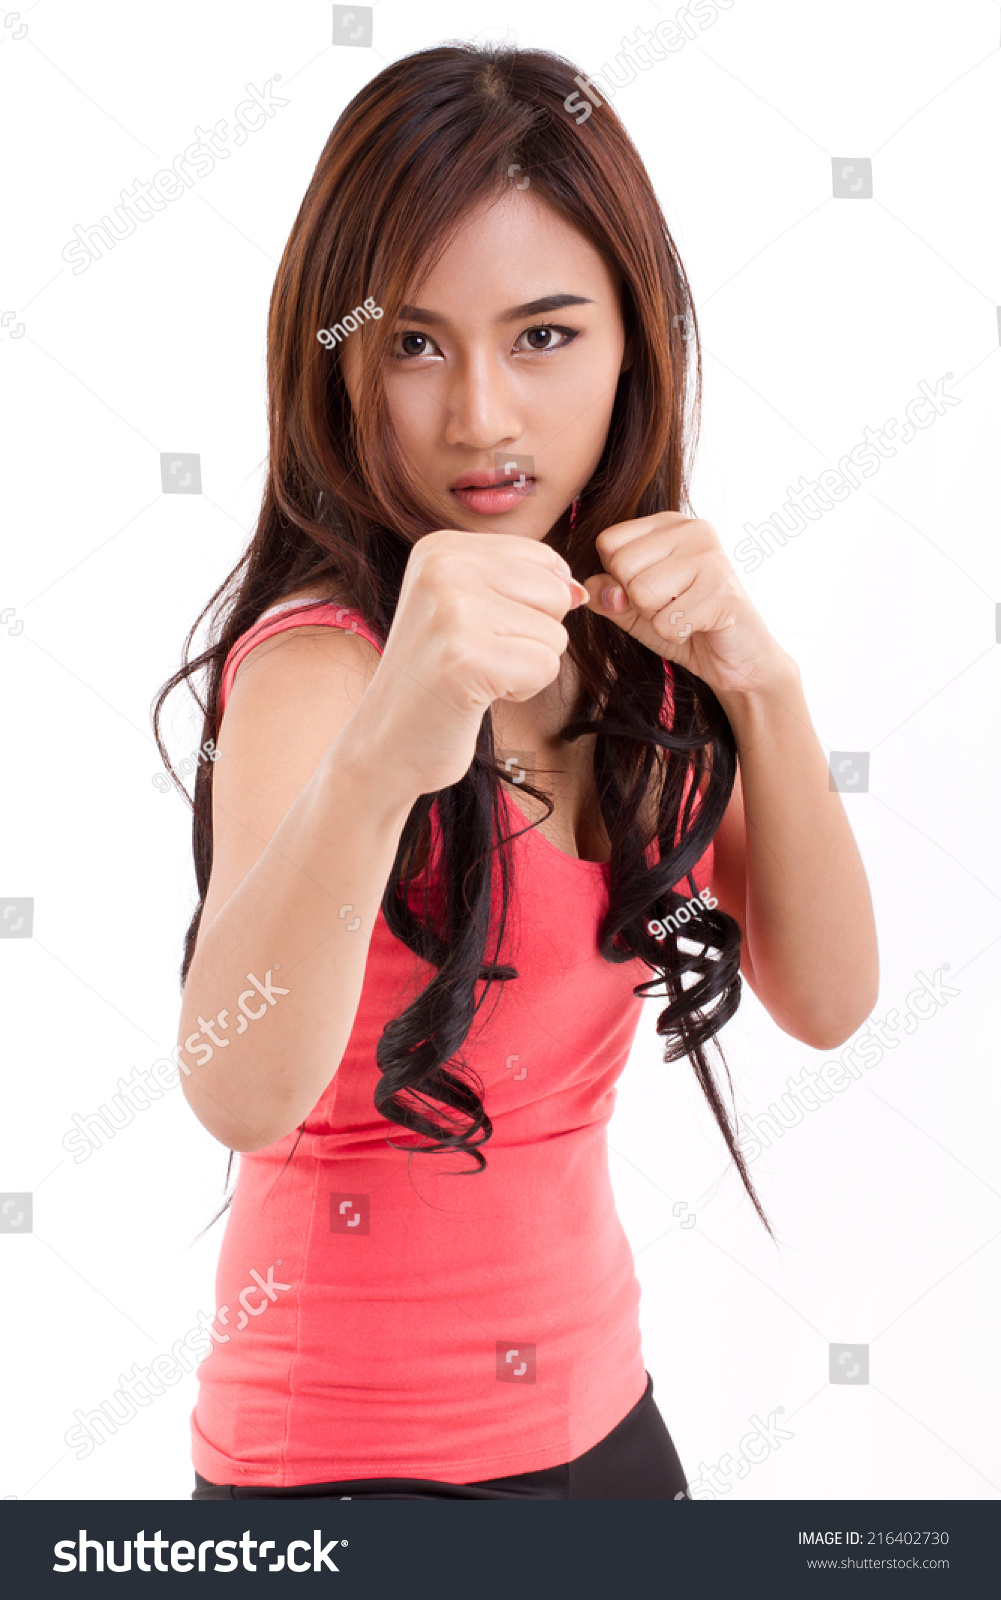 Portrait of female fighter boxer posing fighting stance stock photo